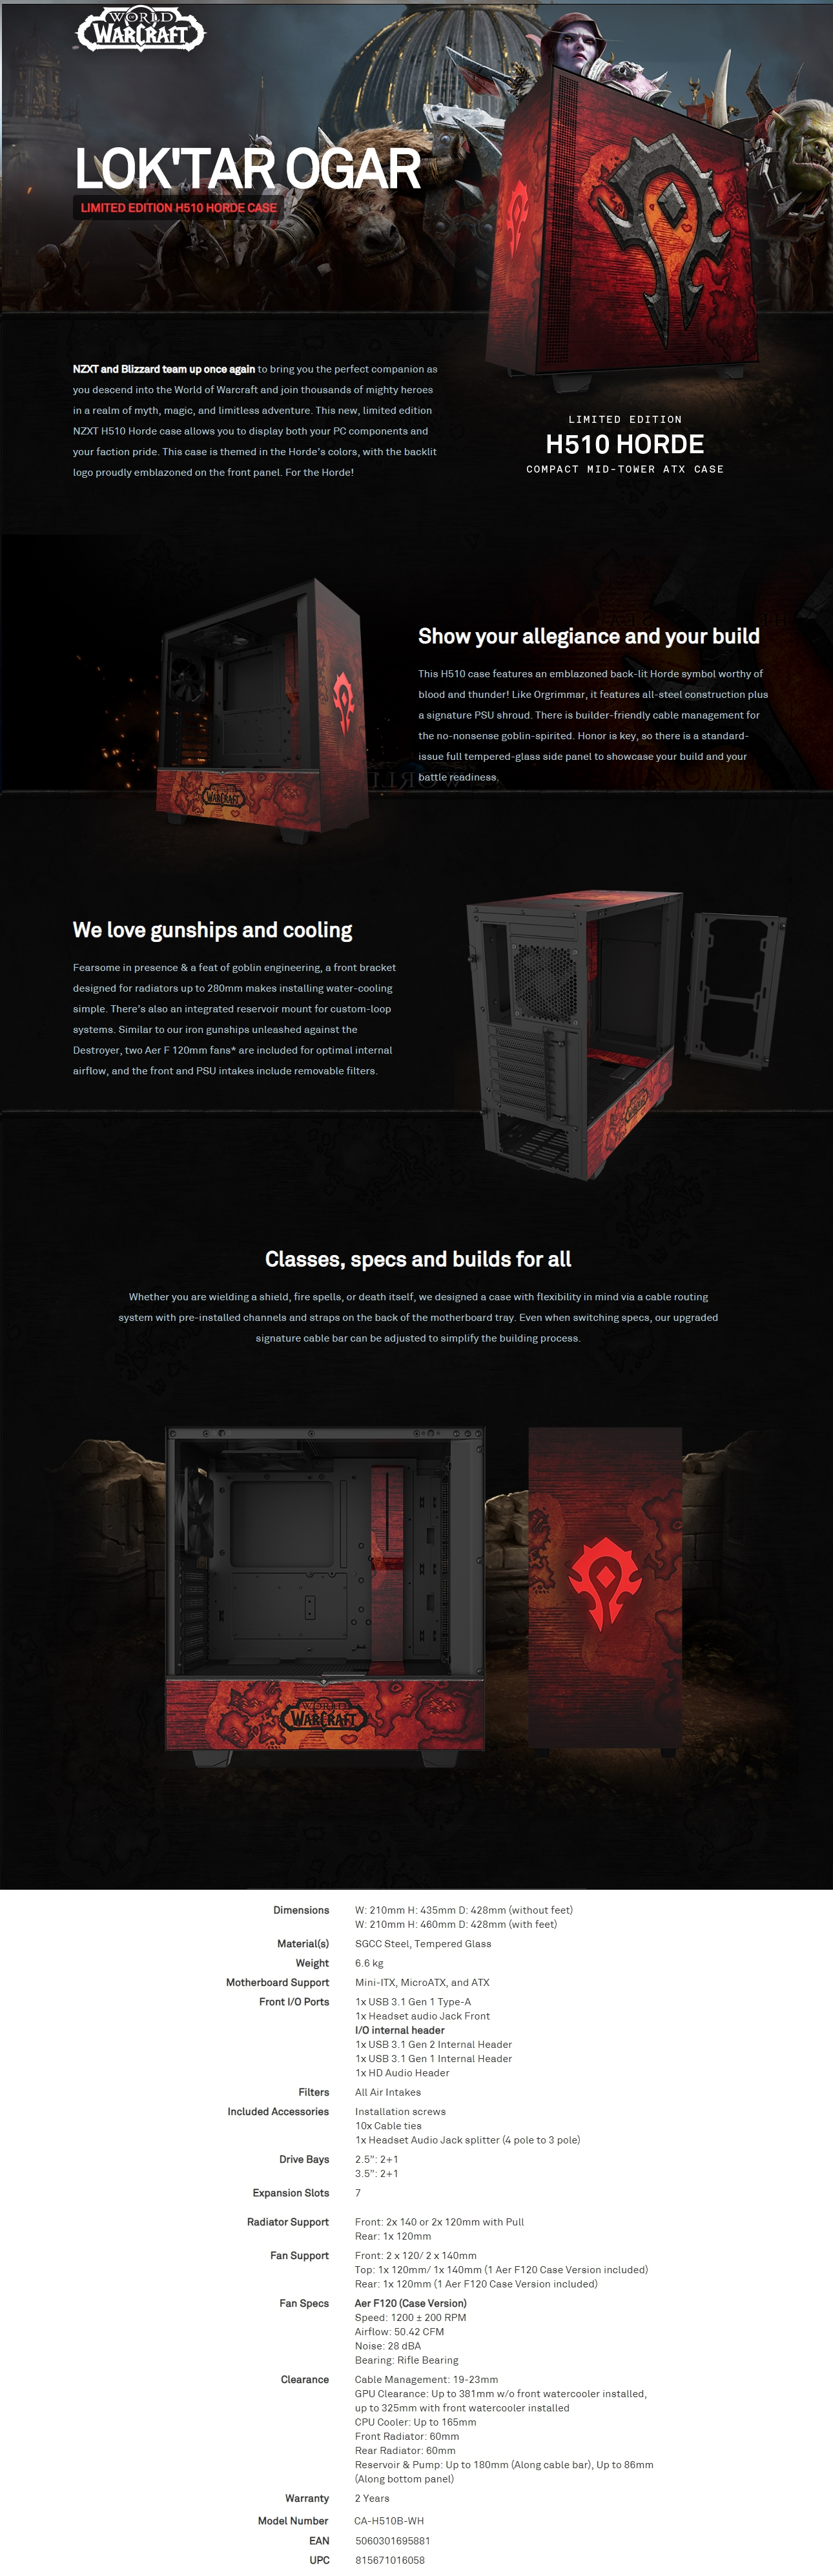 A large marketing image providing additional information about the product NZXT H510 World Of Warcraft Horde Limited Edition Mid Tower Case - Additional alt info not provided